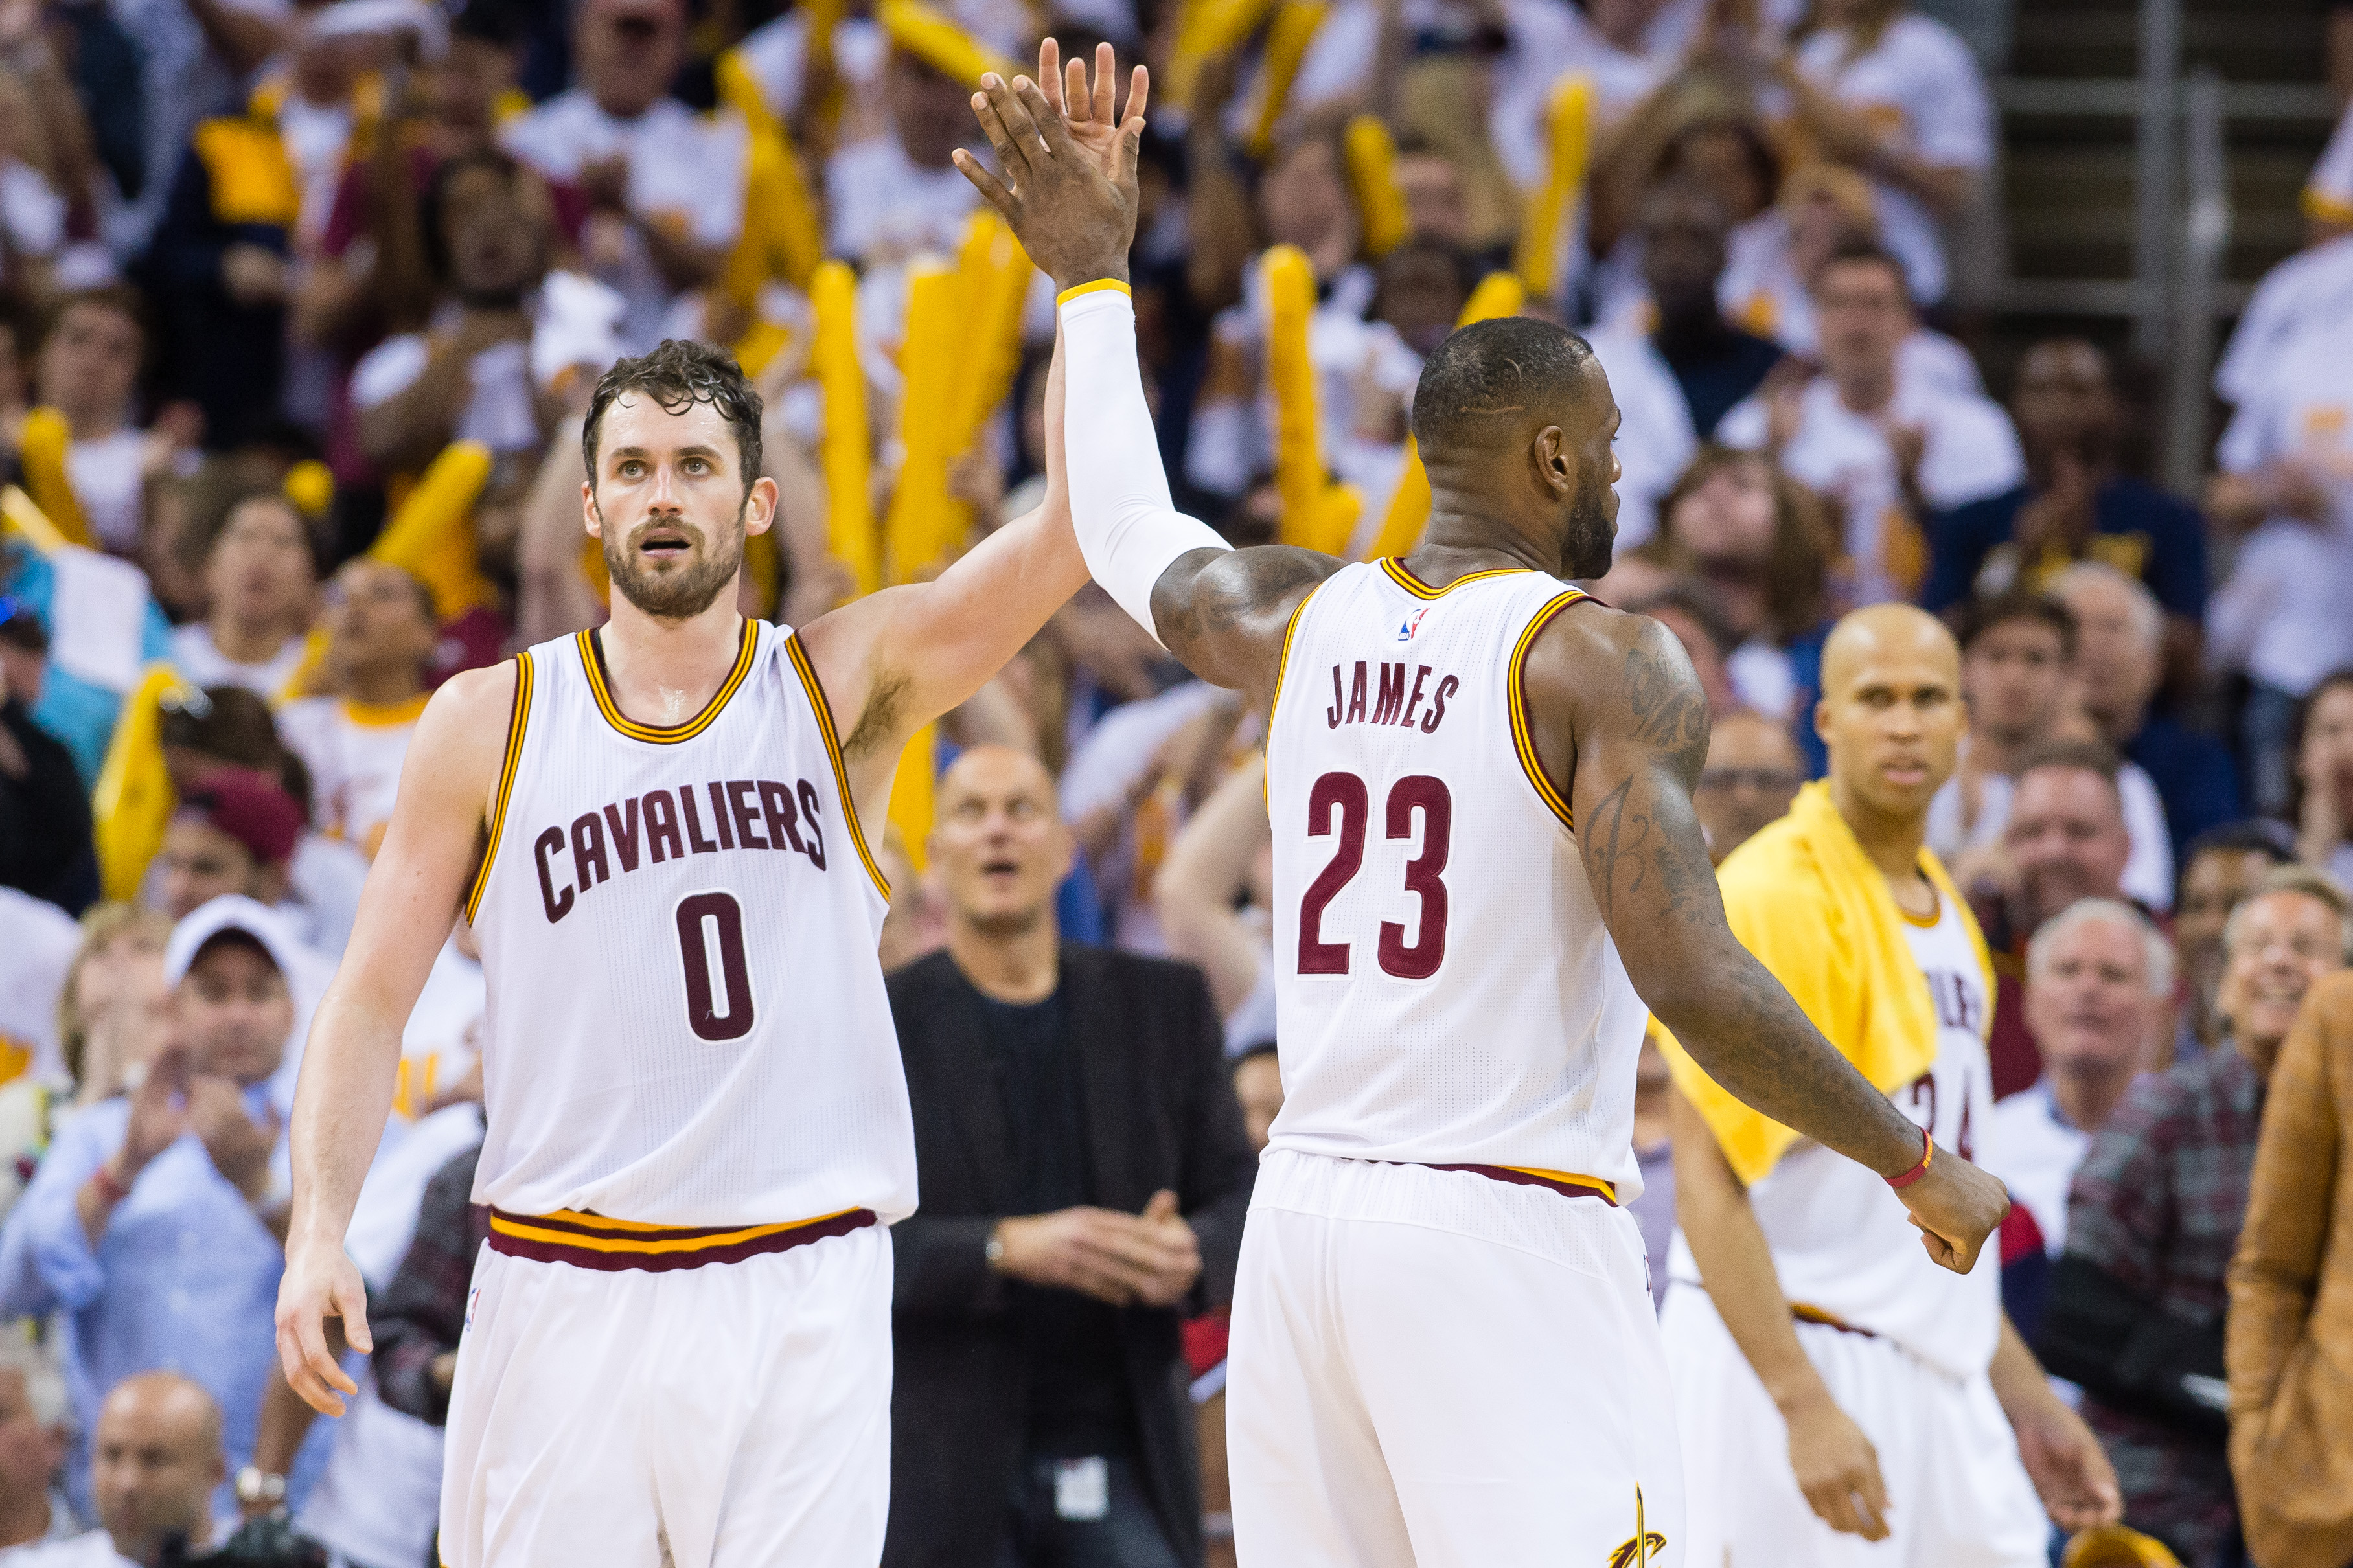 Cavaliers vs warriors game 7 predictions - Cleveland Cavaliers Vs Toronto Raptors Prediction Betting Odds Tv Schedule For 2016 Eastern Conference Finals